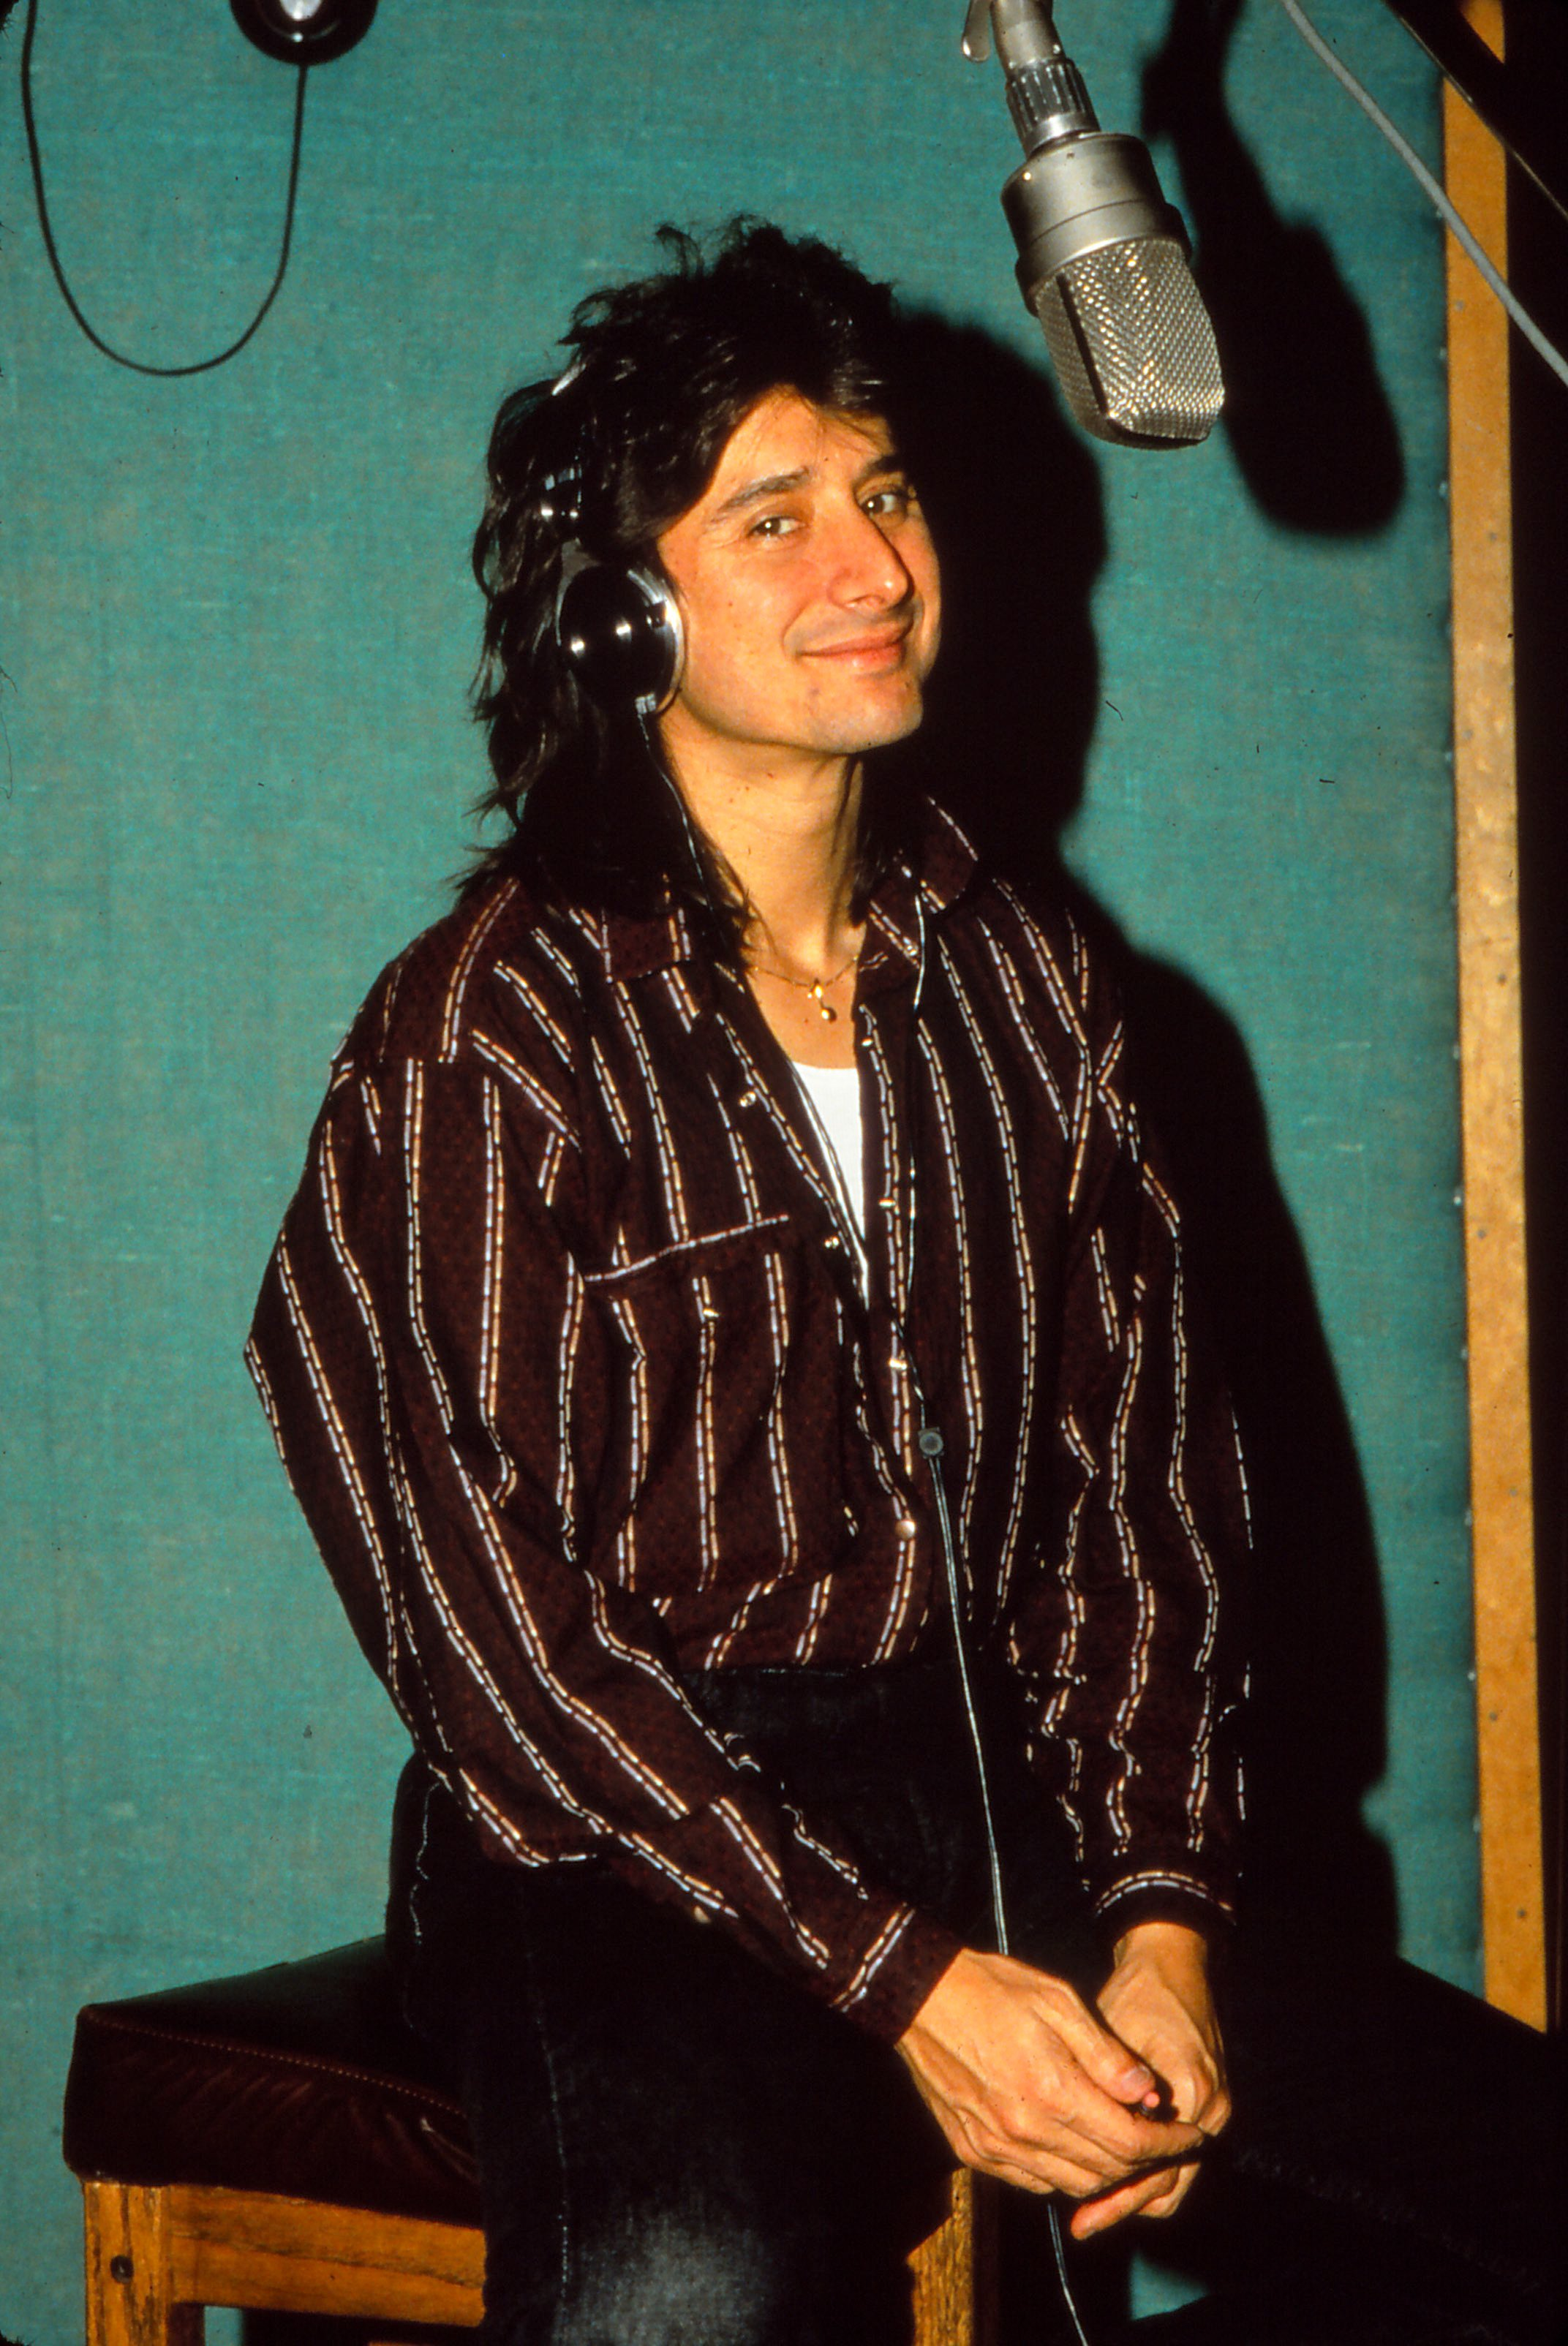 Junger Steve Perry, 1979 | Quelle: Getty Images